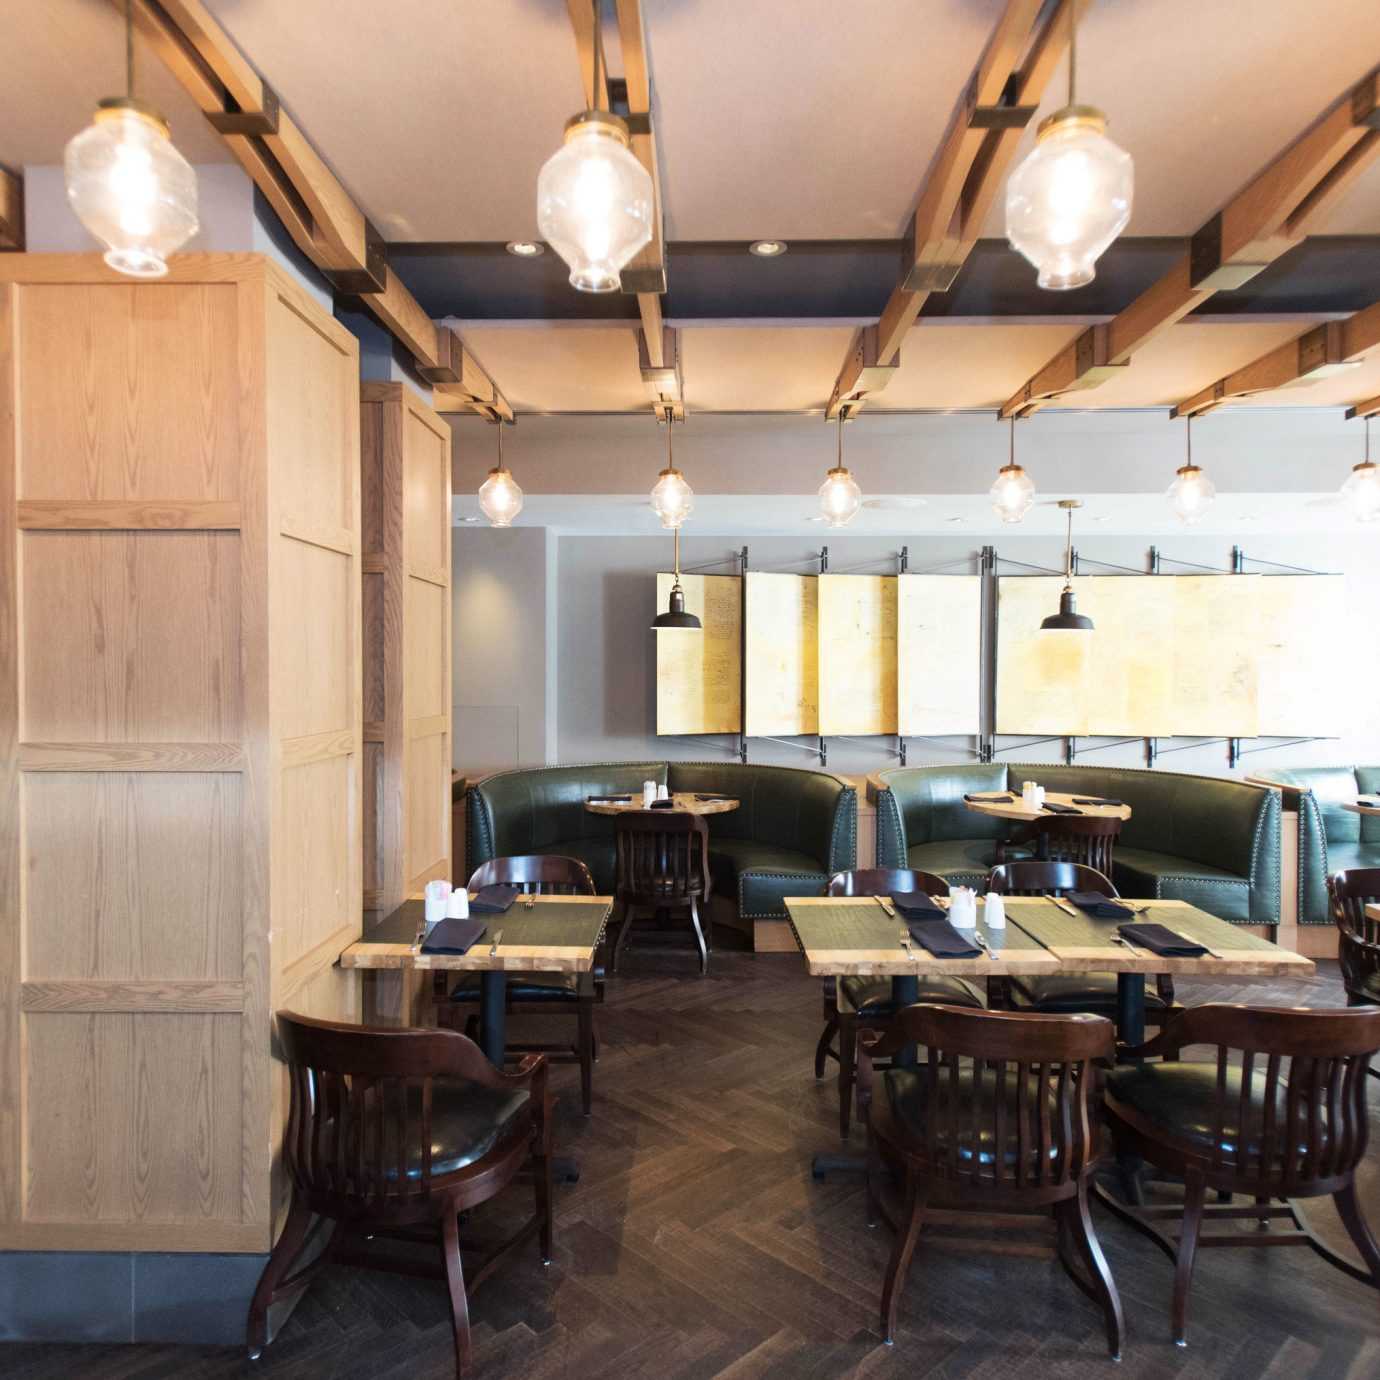 property building recreation room home conference hall restaurant